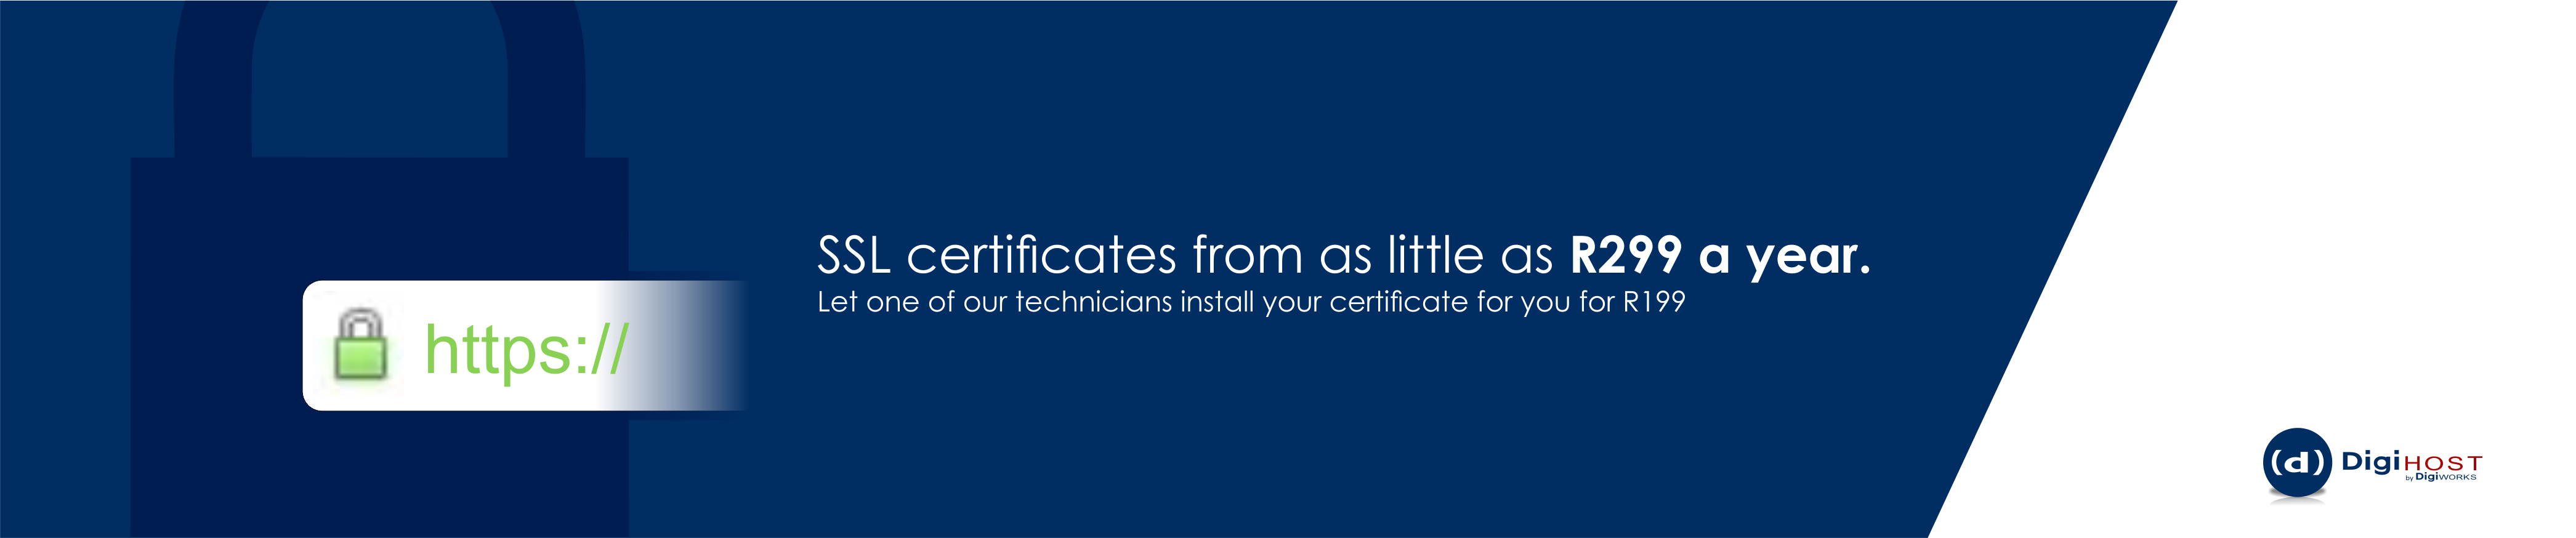 DigiHost SSL certificates